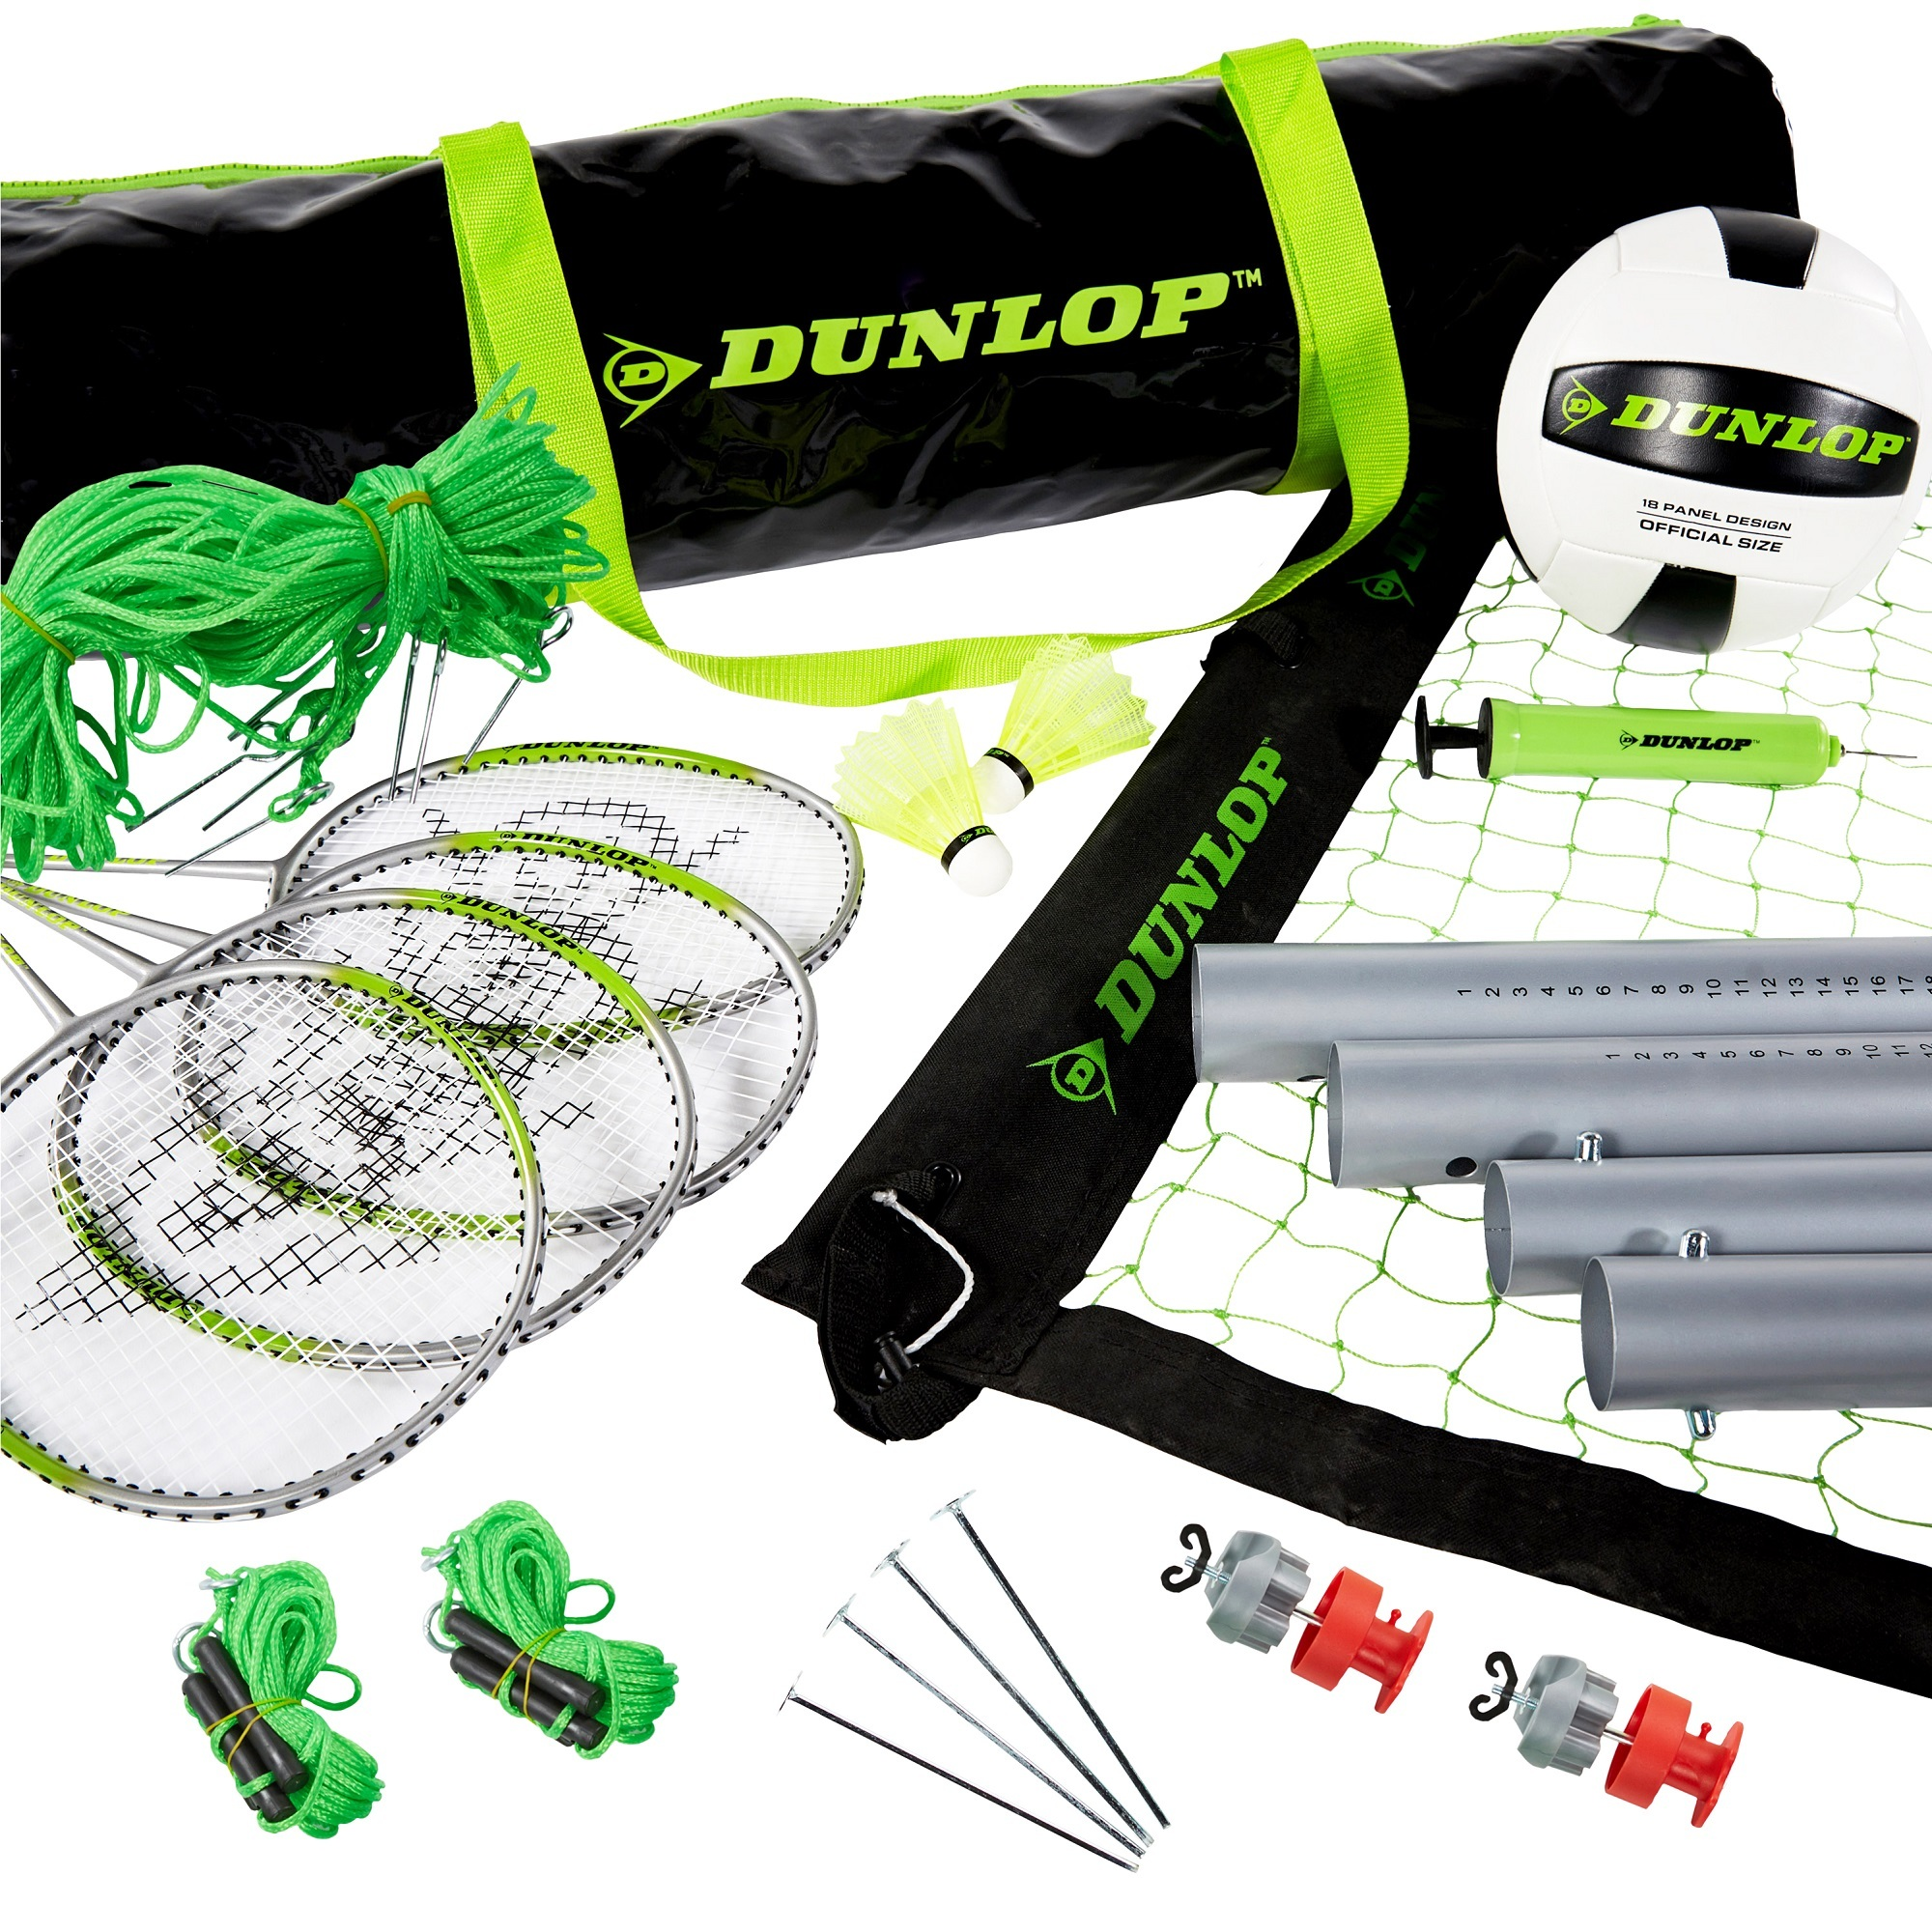 DUNLOP Premium Volleyball and Badminton Combo Set